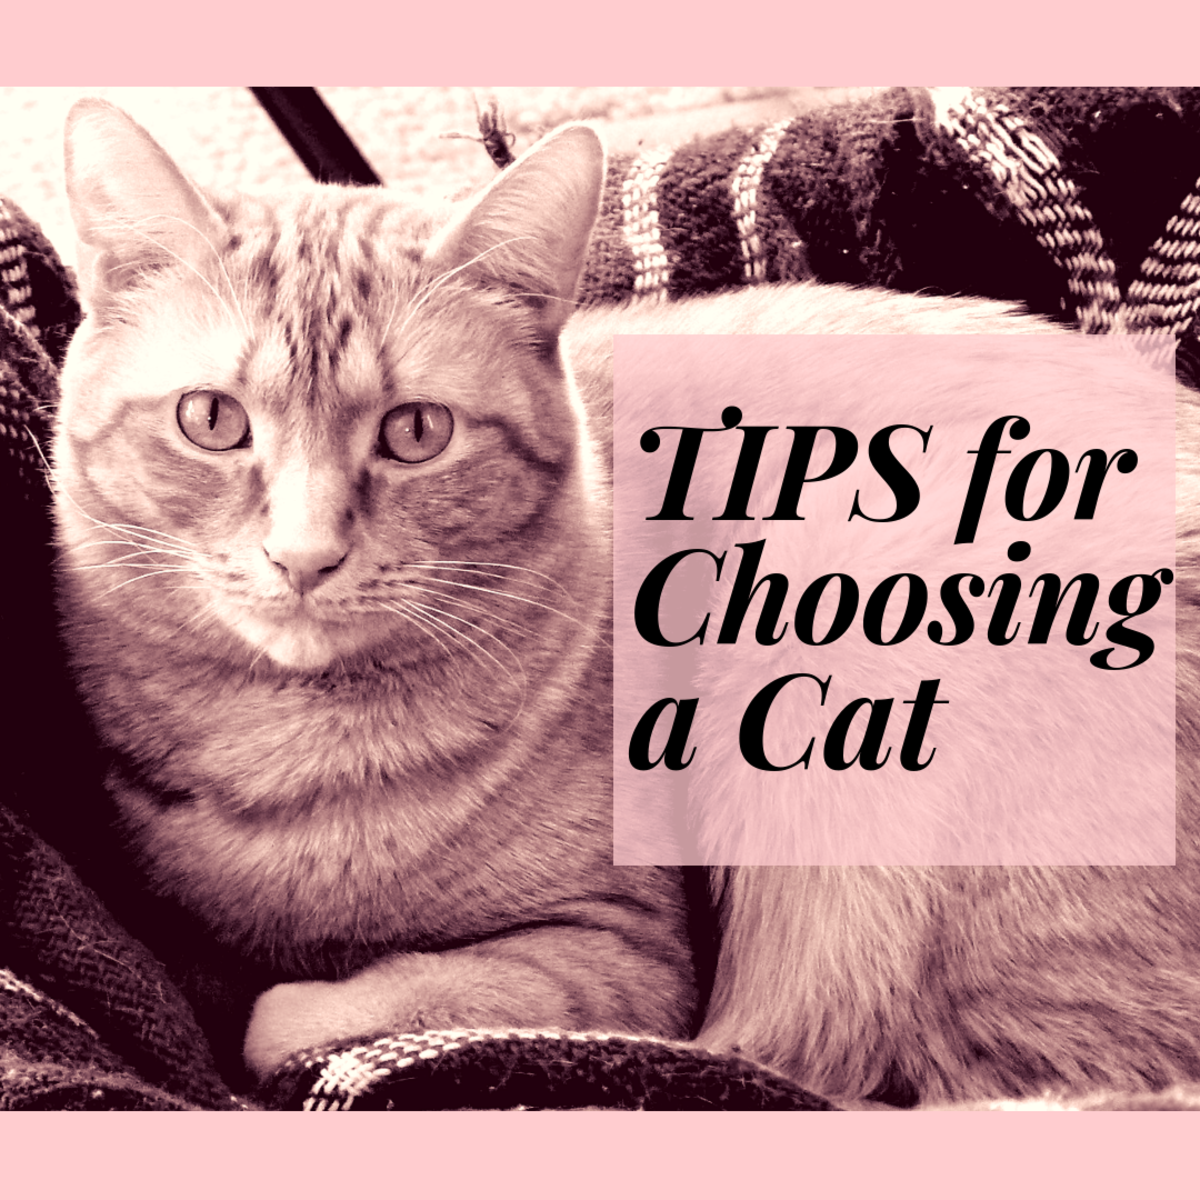 Learn some tips for choosing a cat